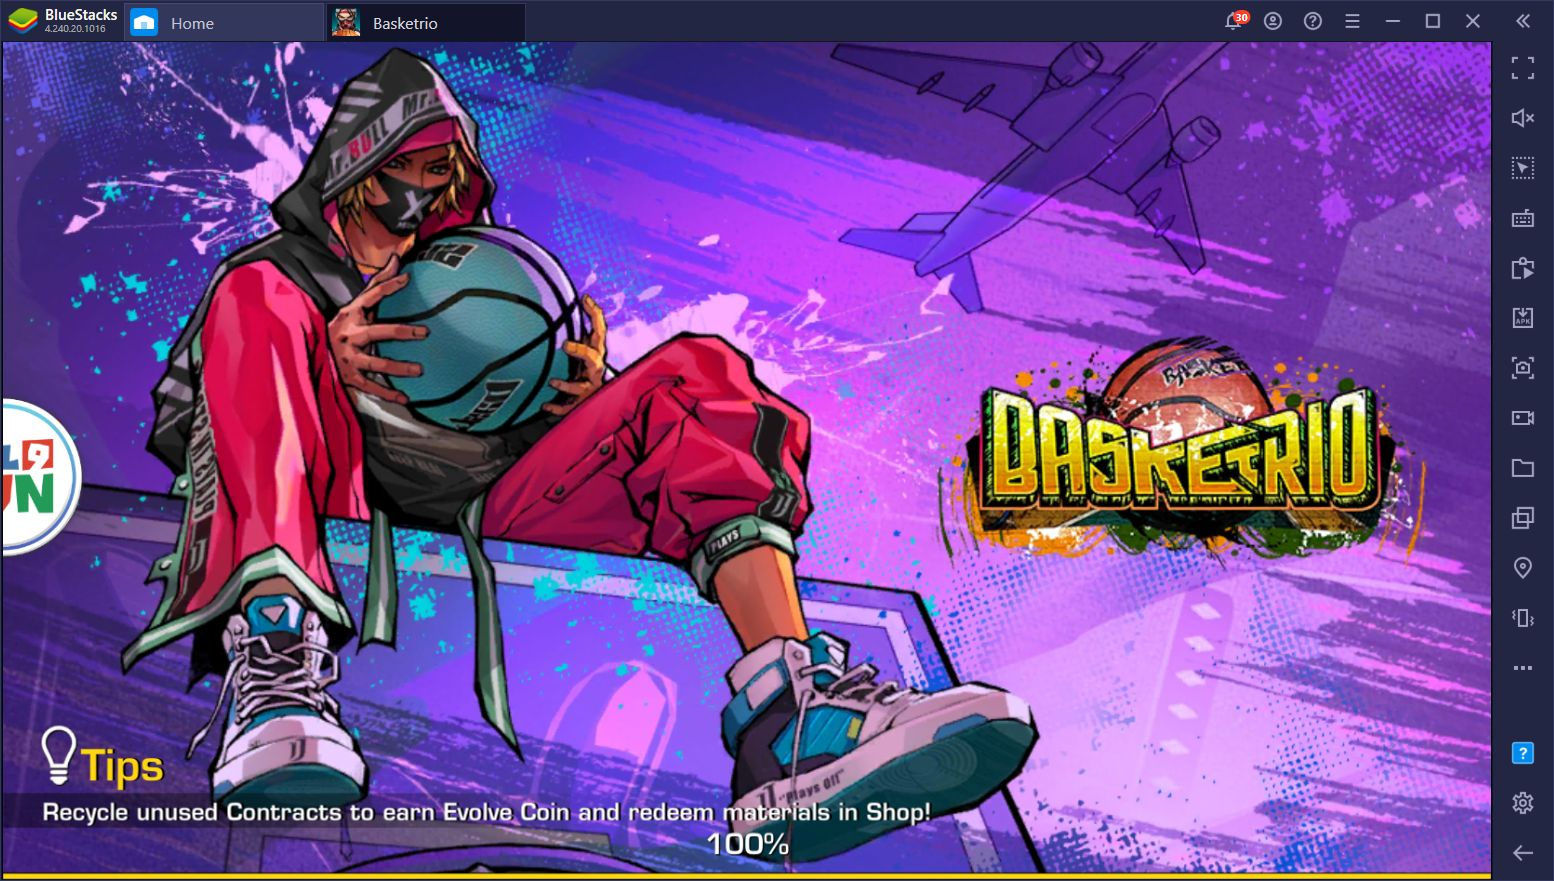 Basketrio for PC – How to Play This Awesome Mobile Basketball Game on PC